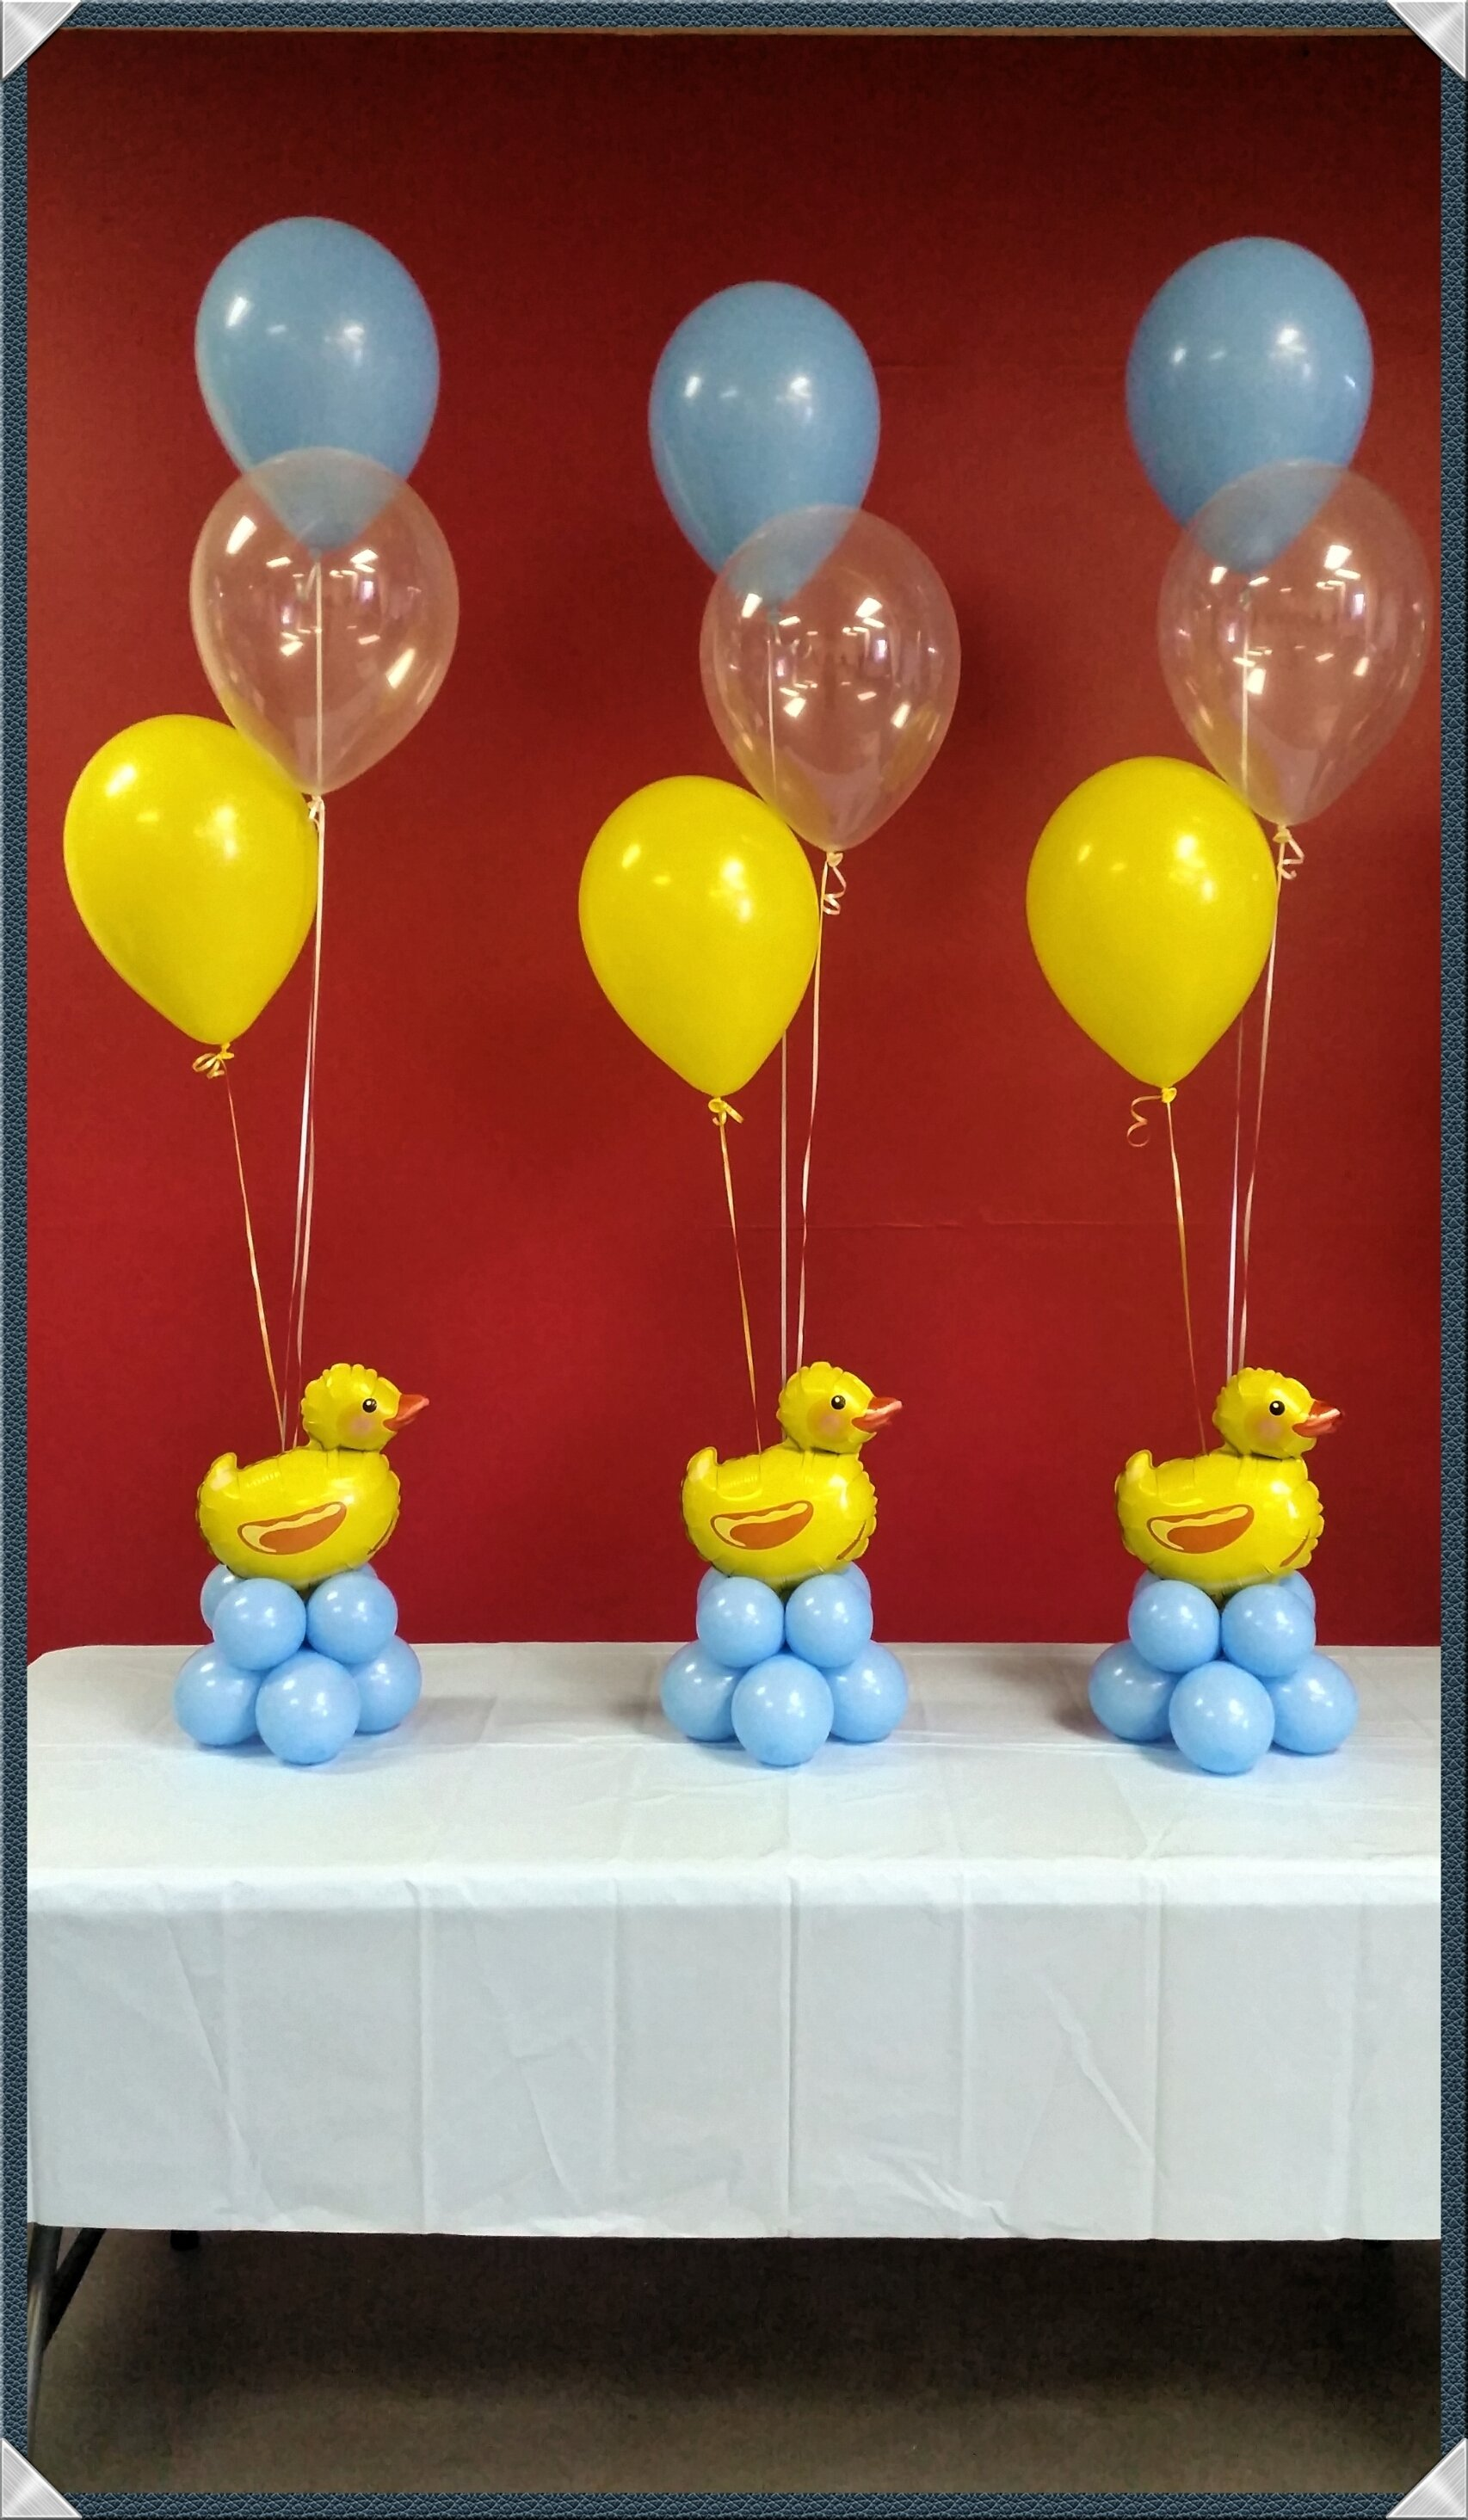 10 Amazing Rubber Duck Baby Shower Ideas by rosielloons baby shower duckies pinterest babies 2021